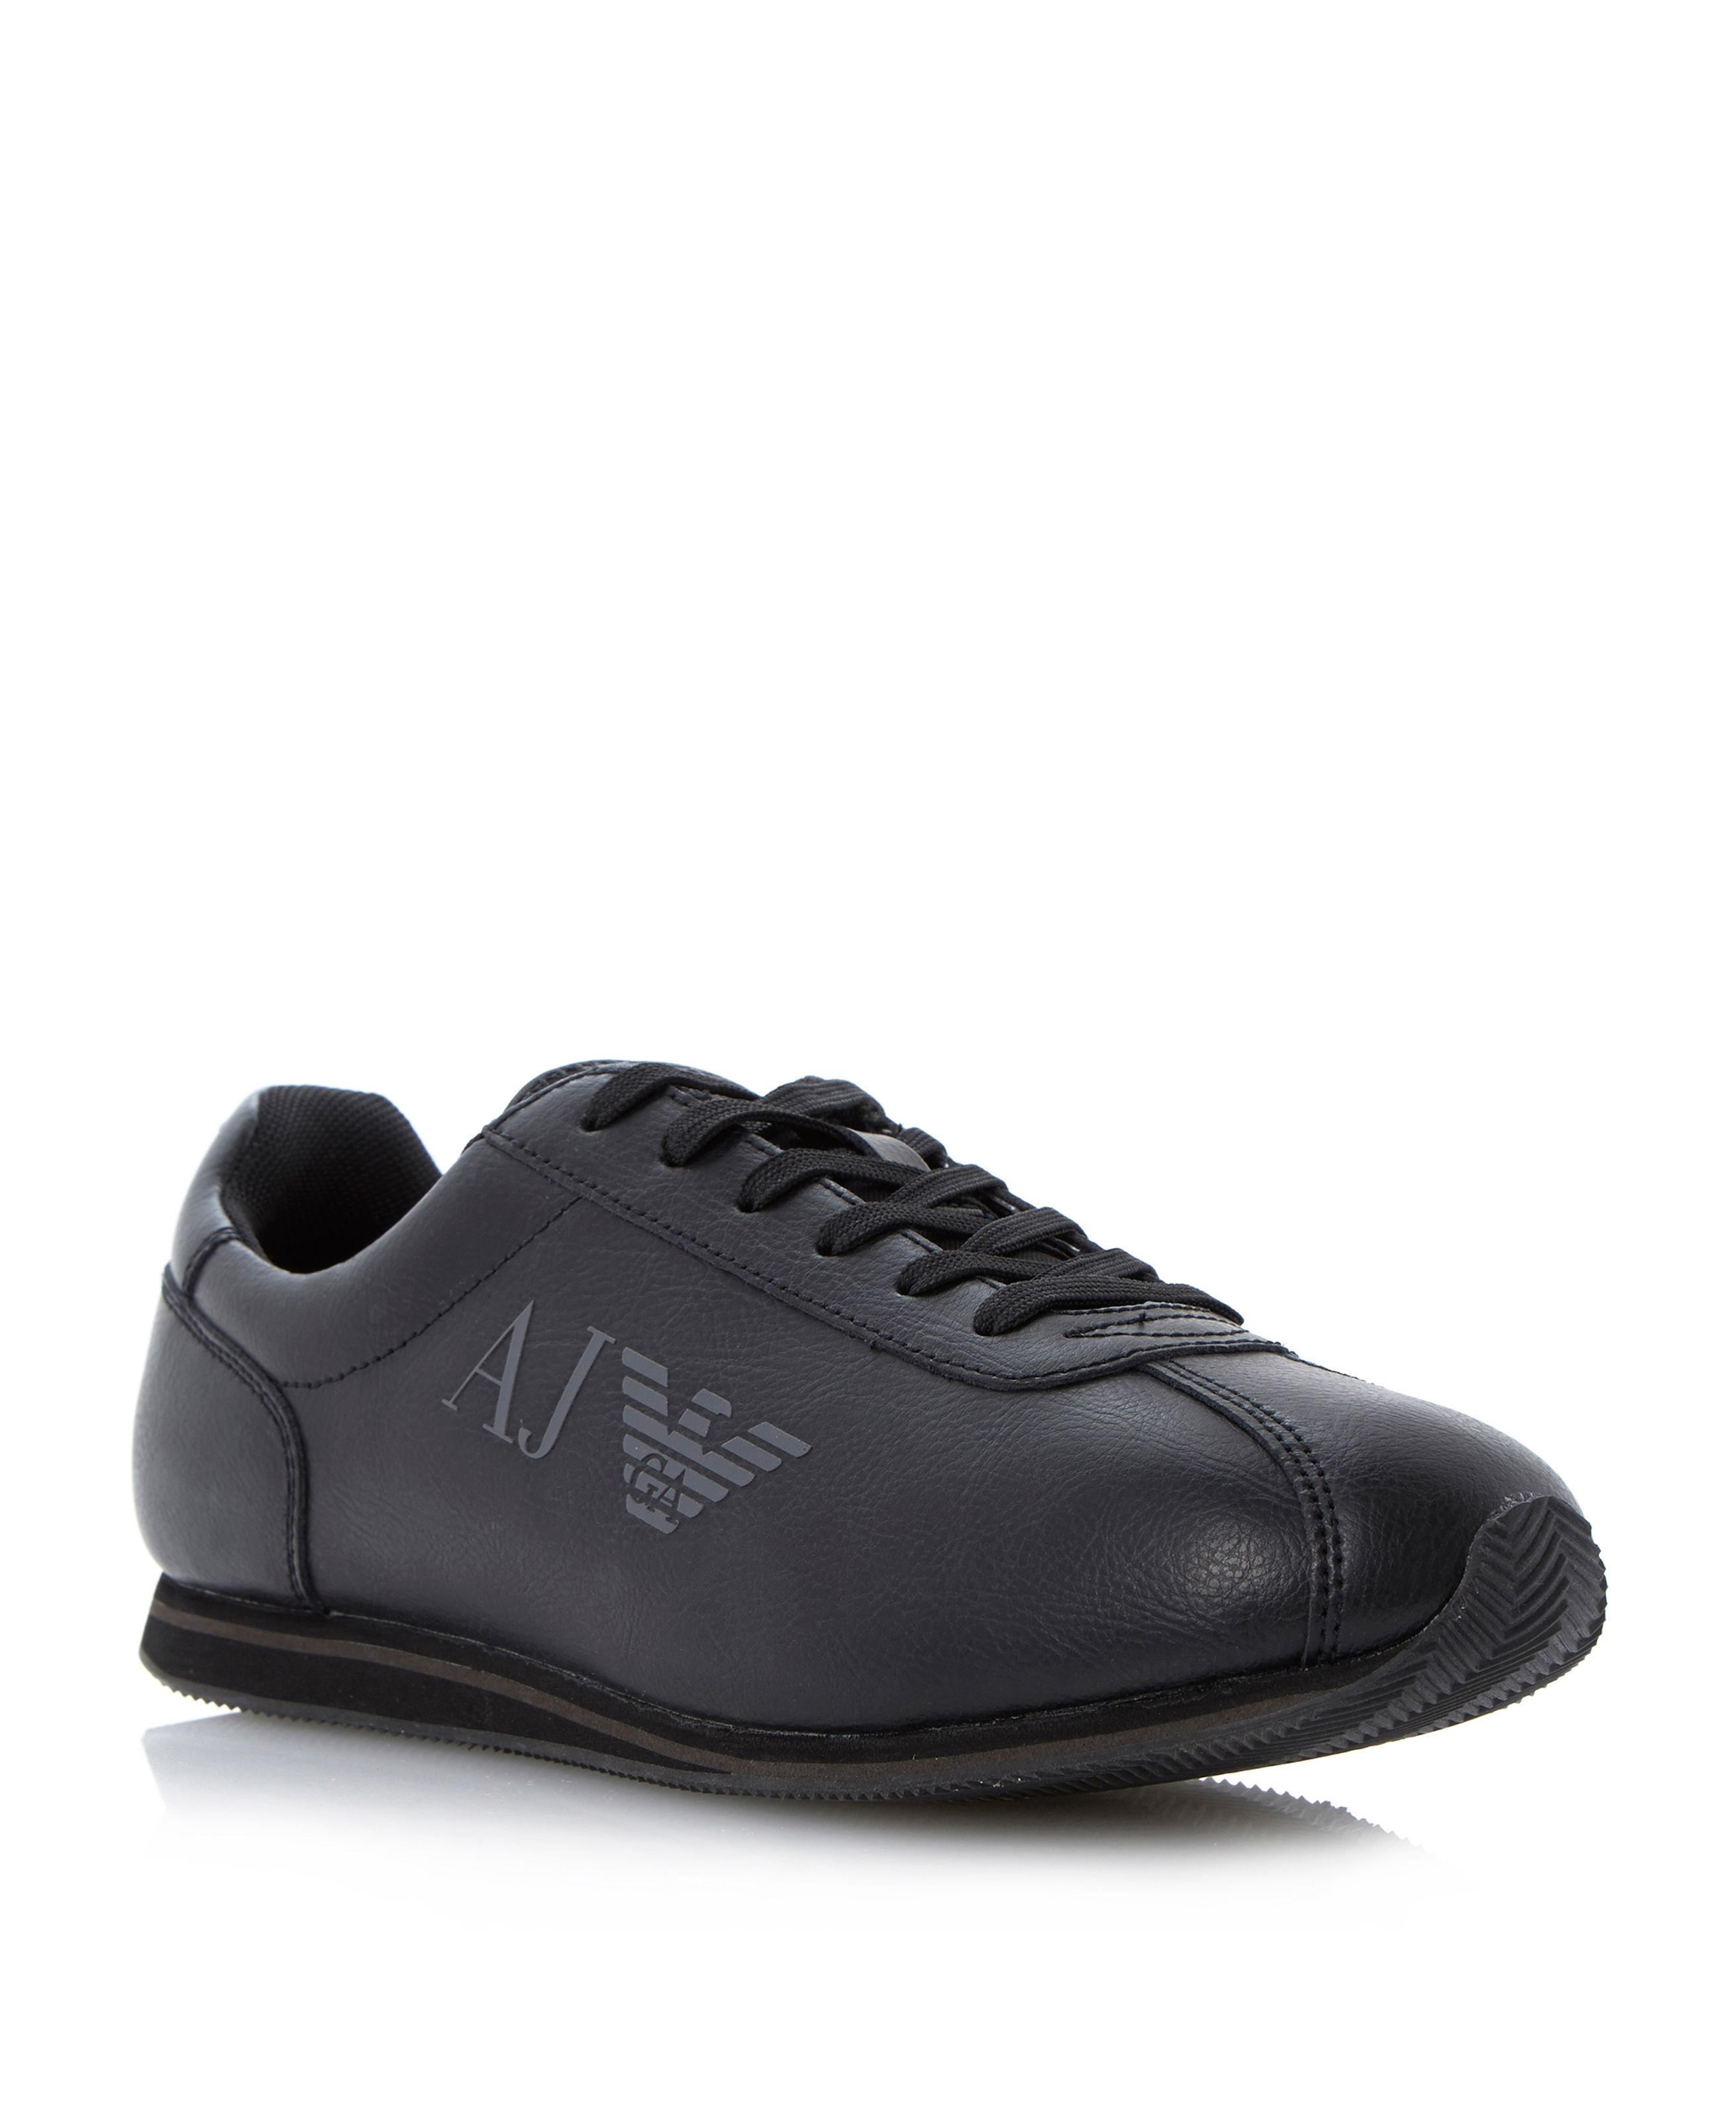 Leather side logo lace up trainers